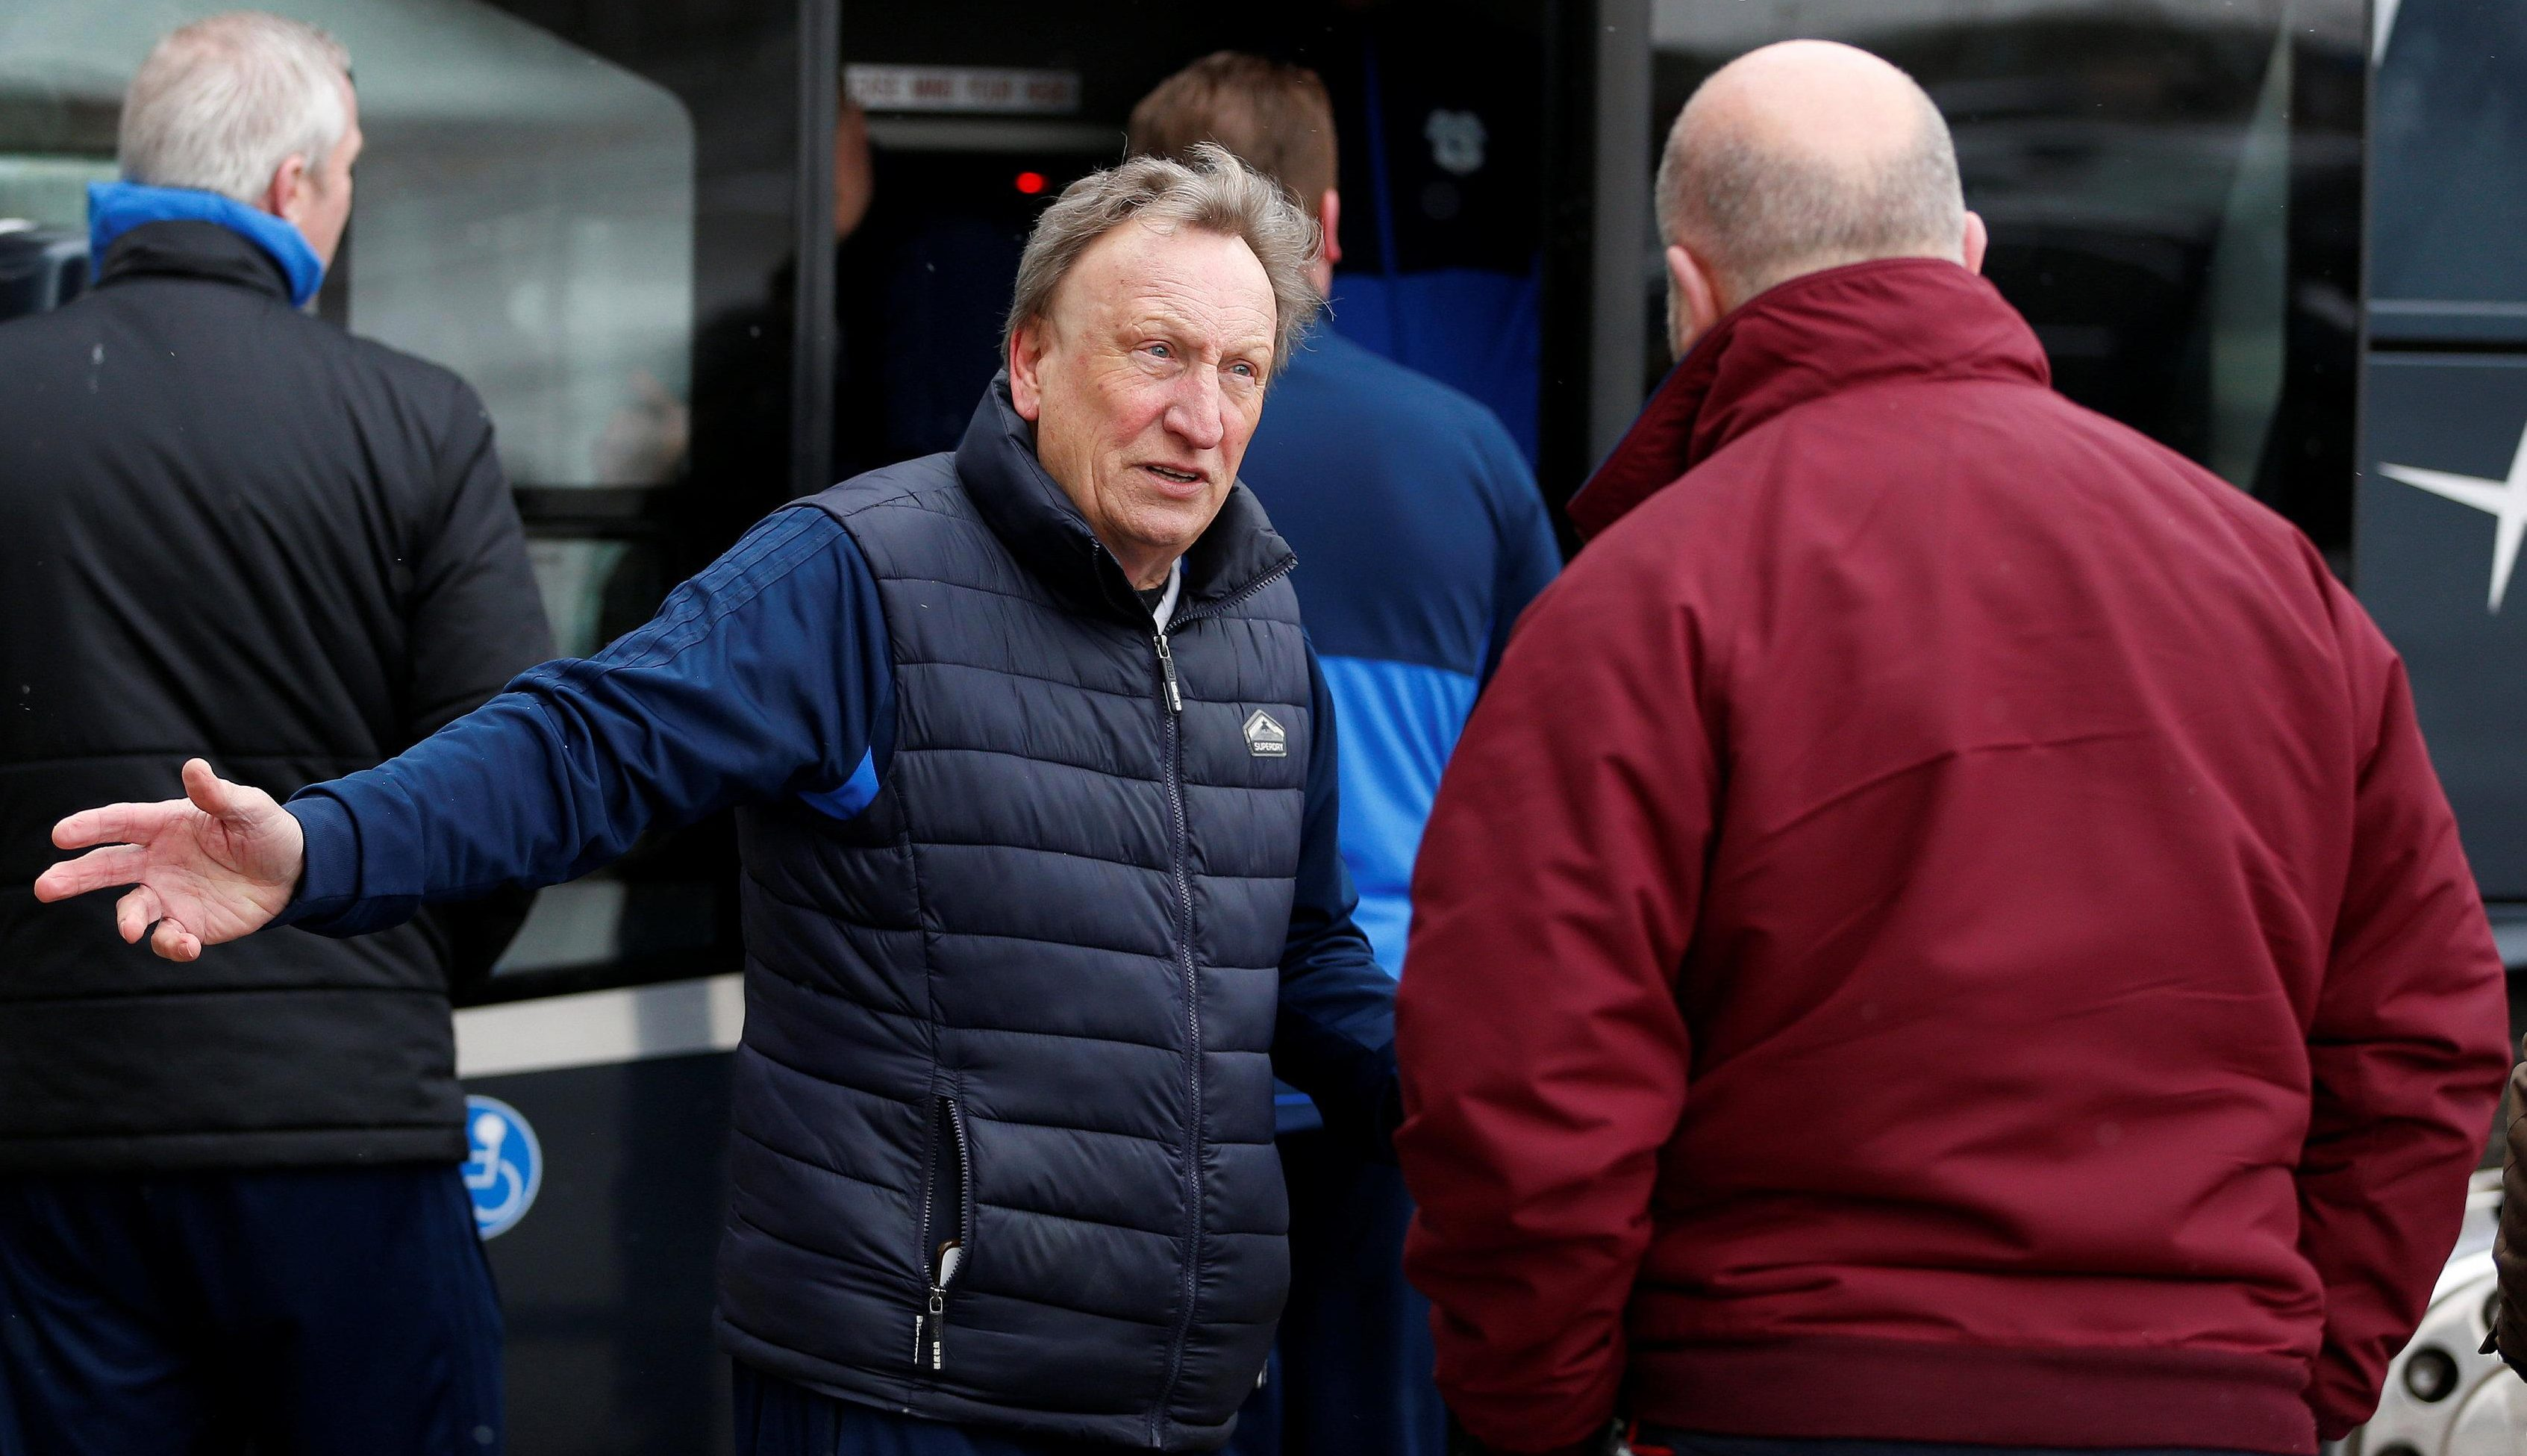 But Warnock was still very annoyed the game was called off